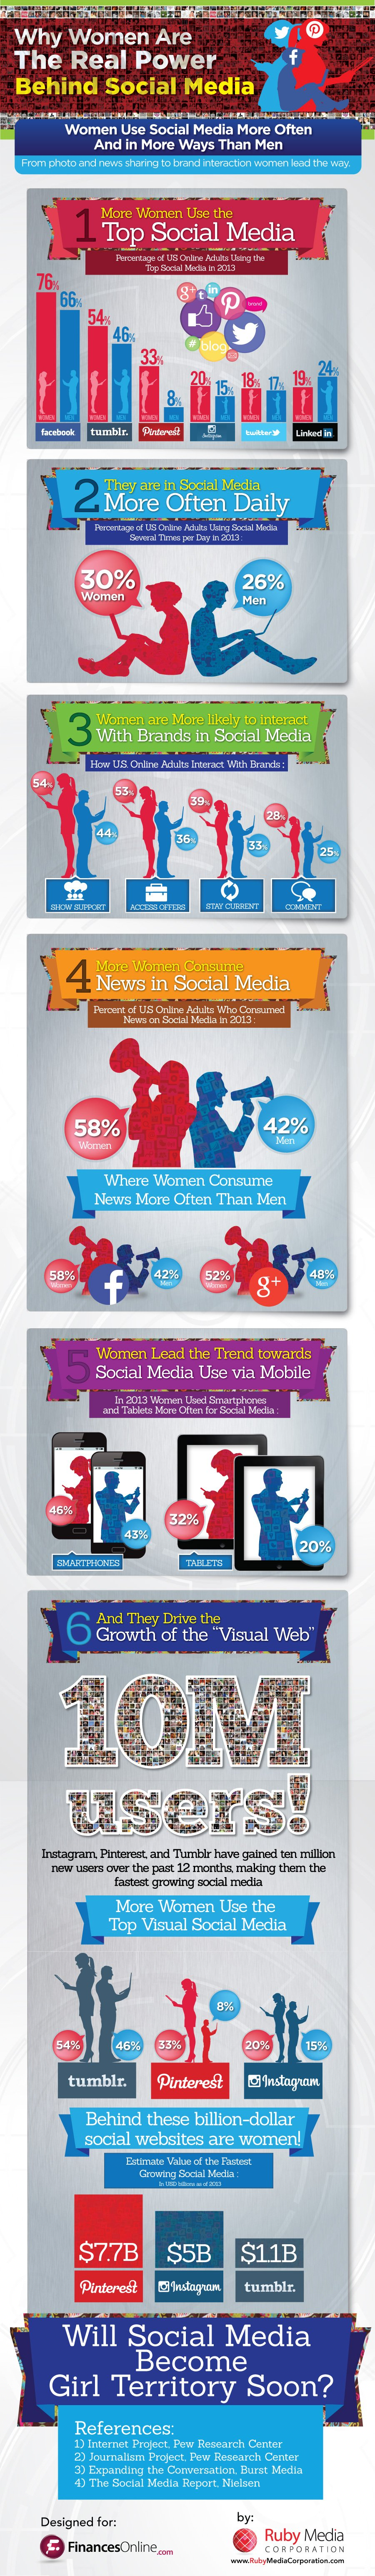 Why Women Are The Real Power Behind Social Media [Infographic]